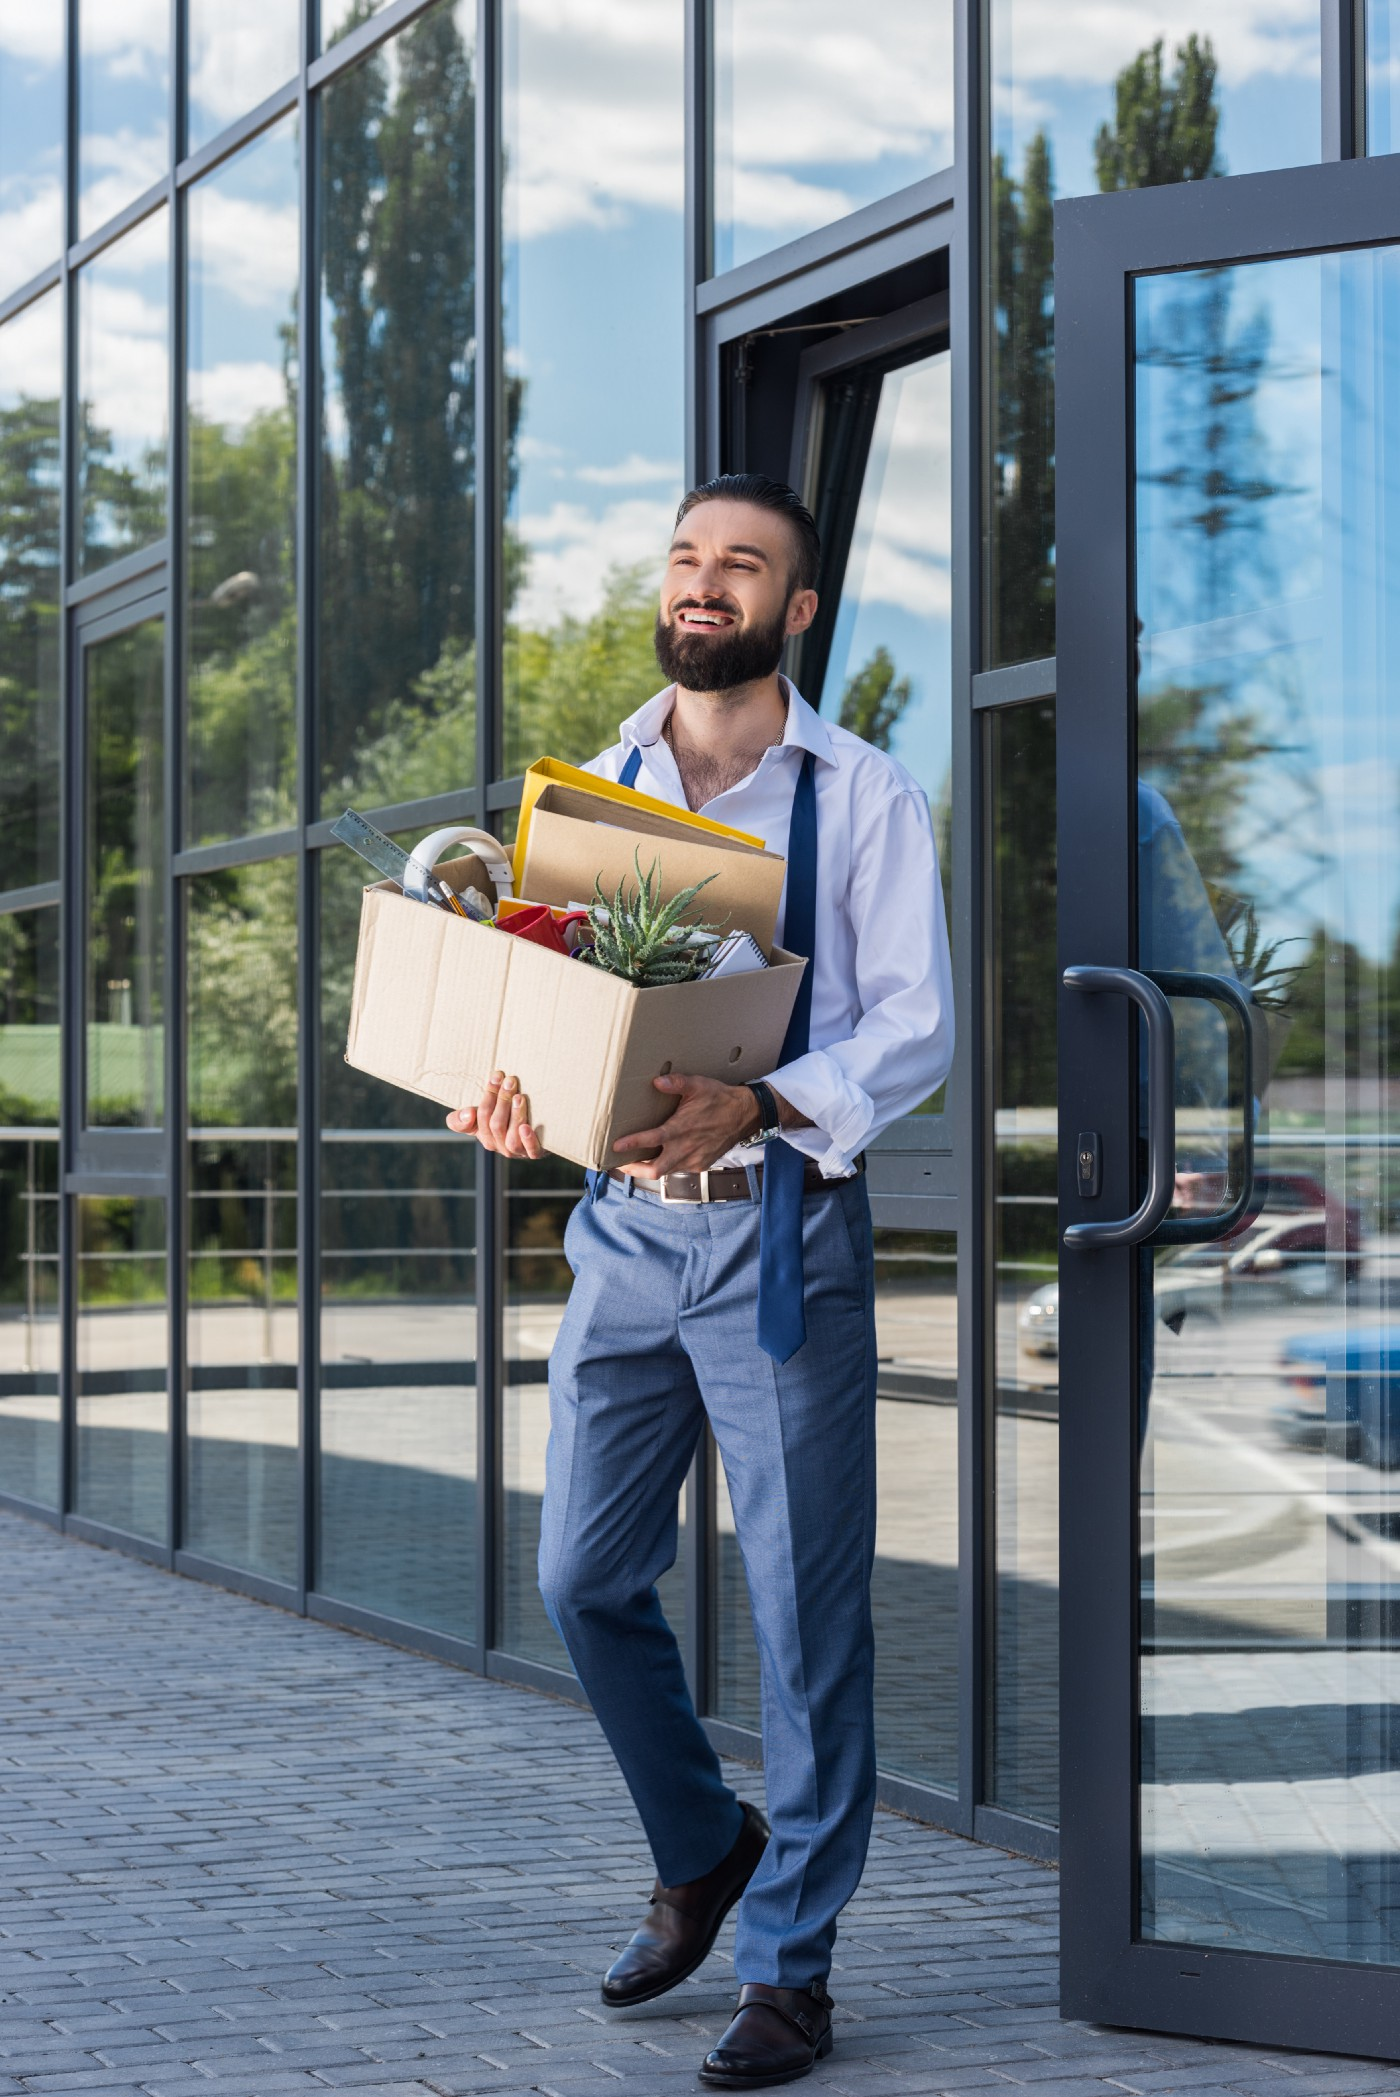 Man leaving work having cleared out his desk. He looks happy about it.